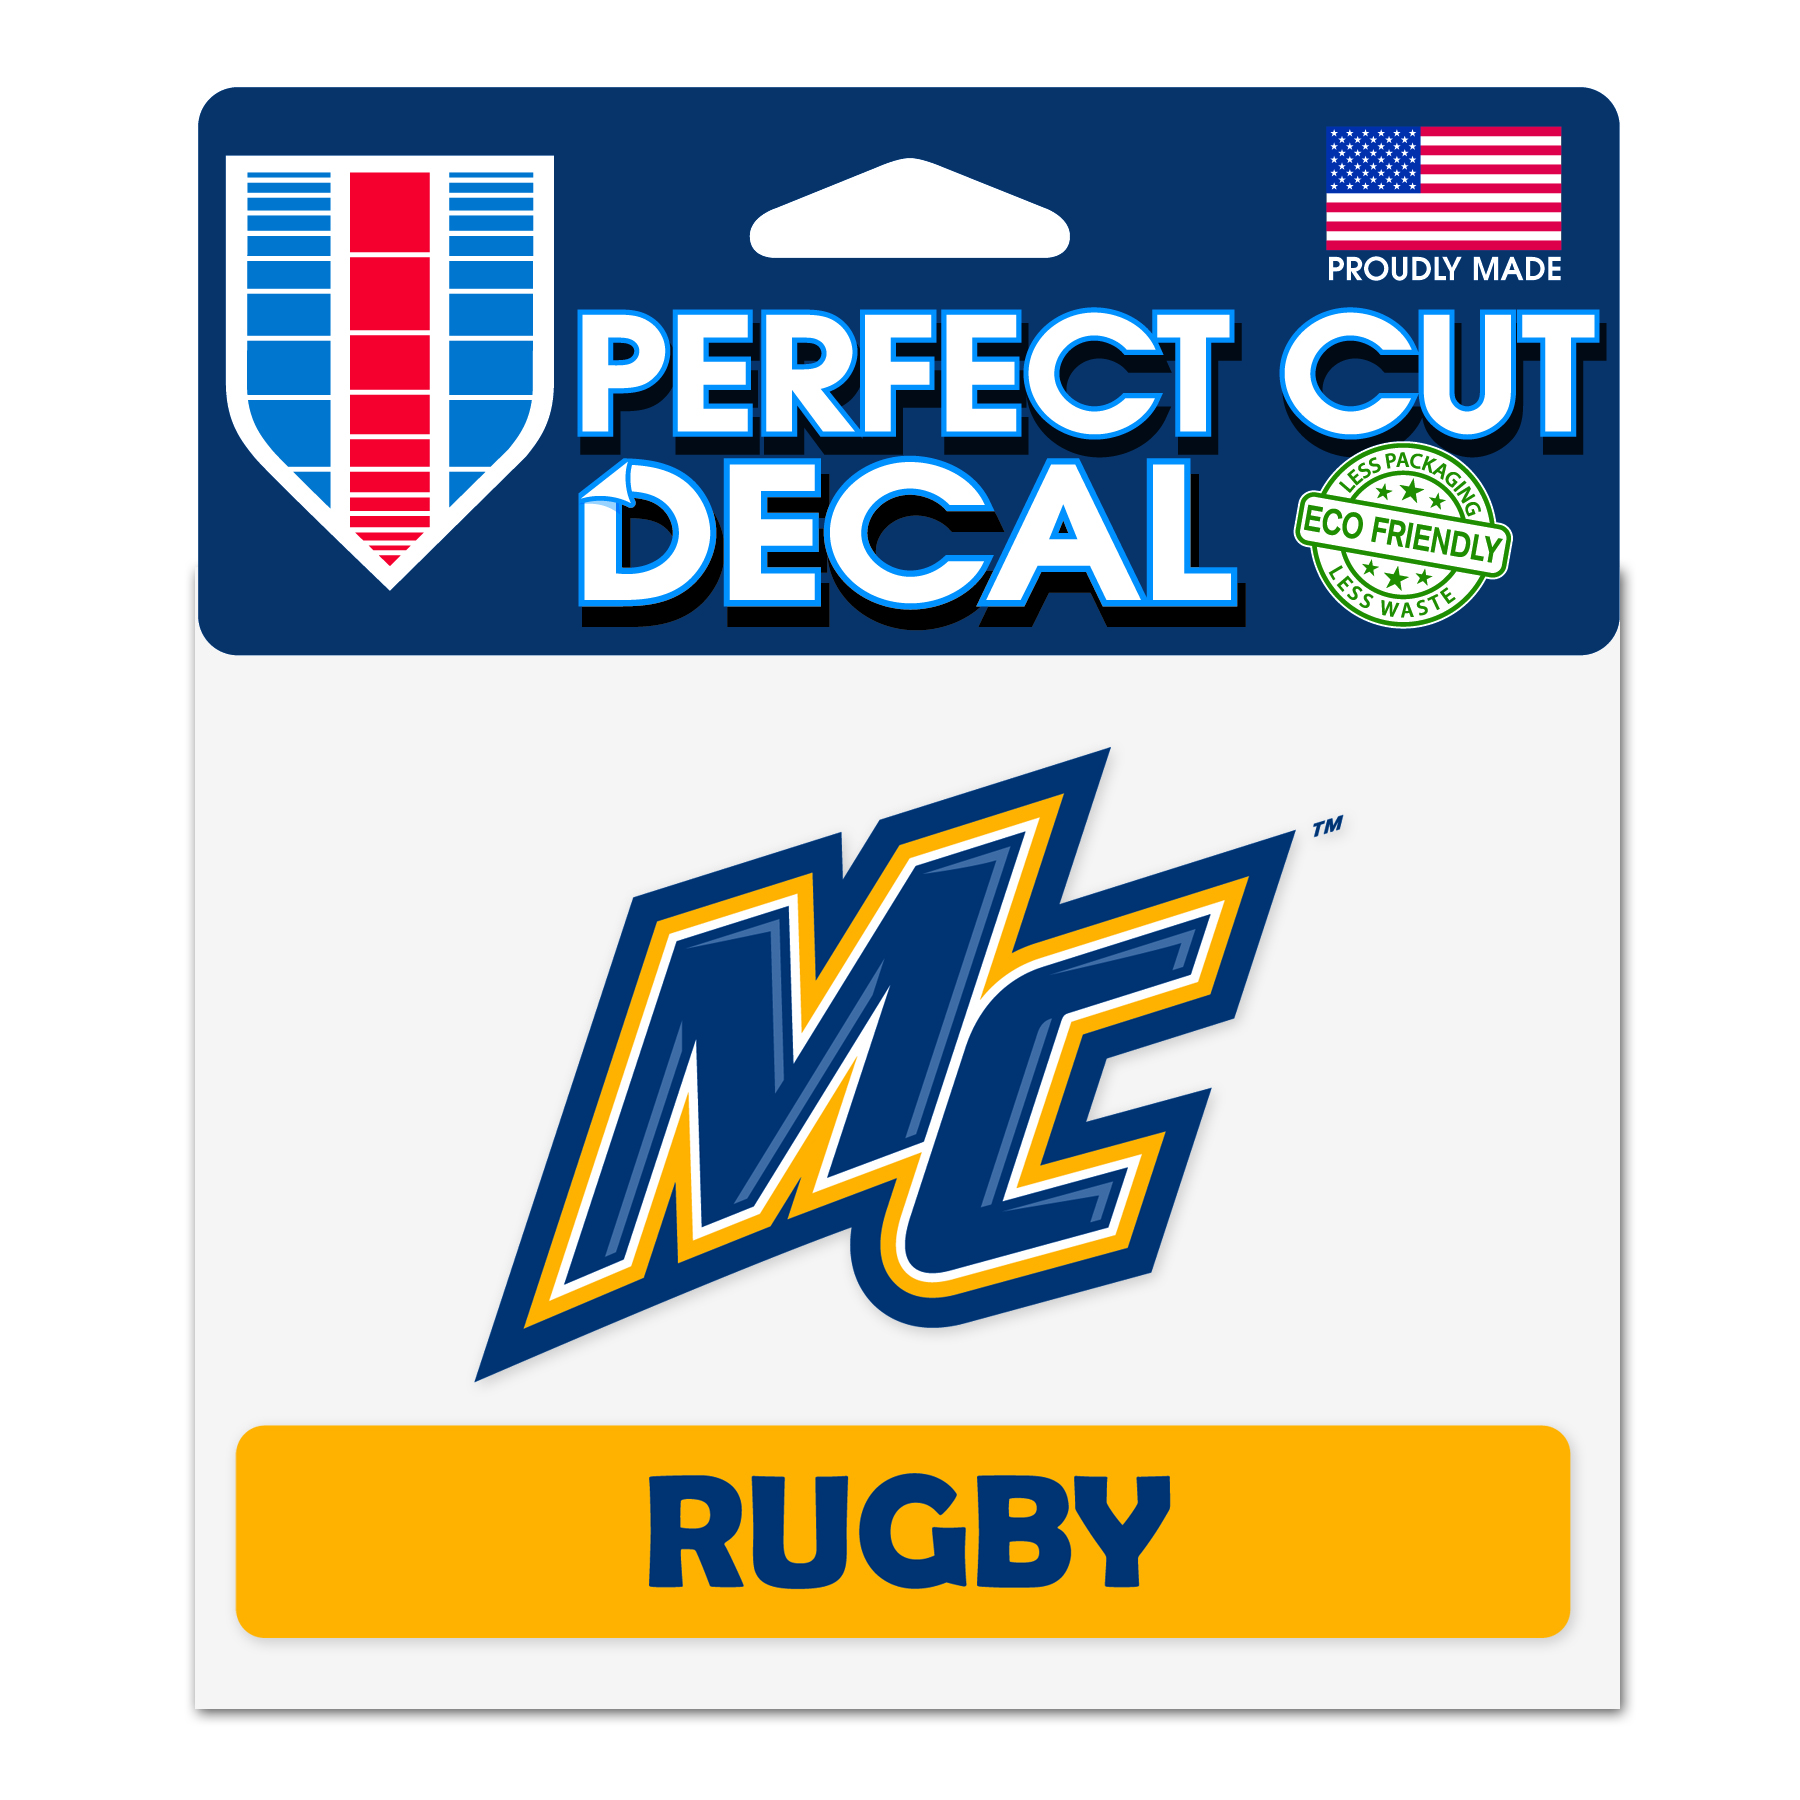 Decal - Rugby